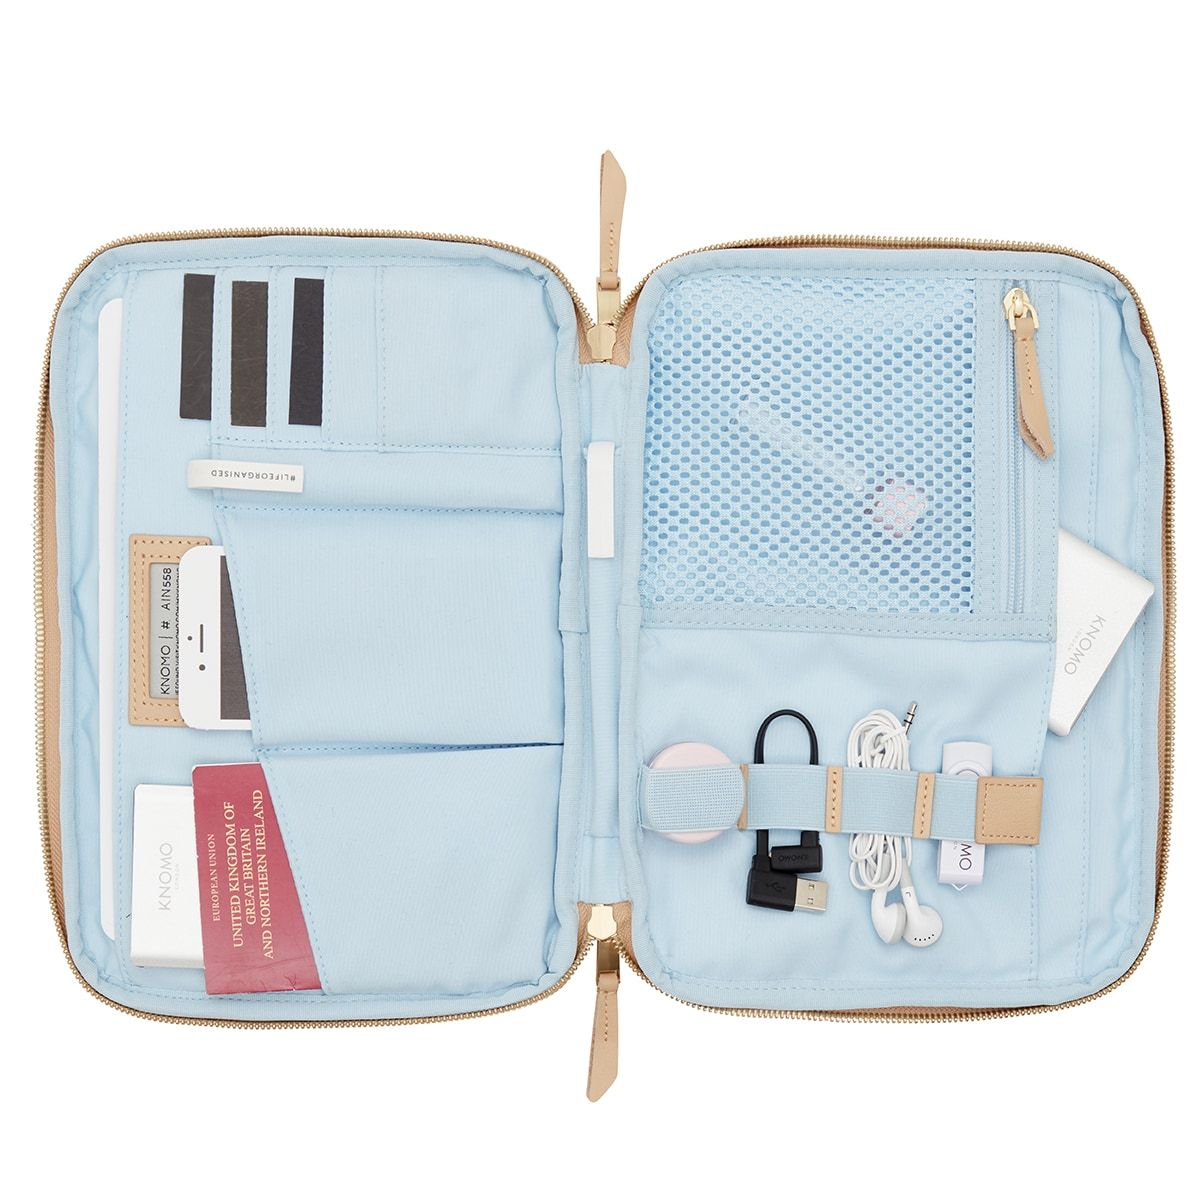 "KNOMO Knomad X-Body Organiser Tech Organiser Internal With Items 10.5"" -  Trench Beige 